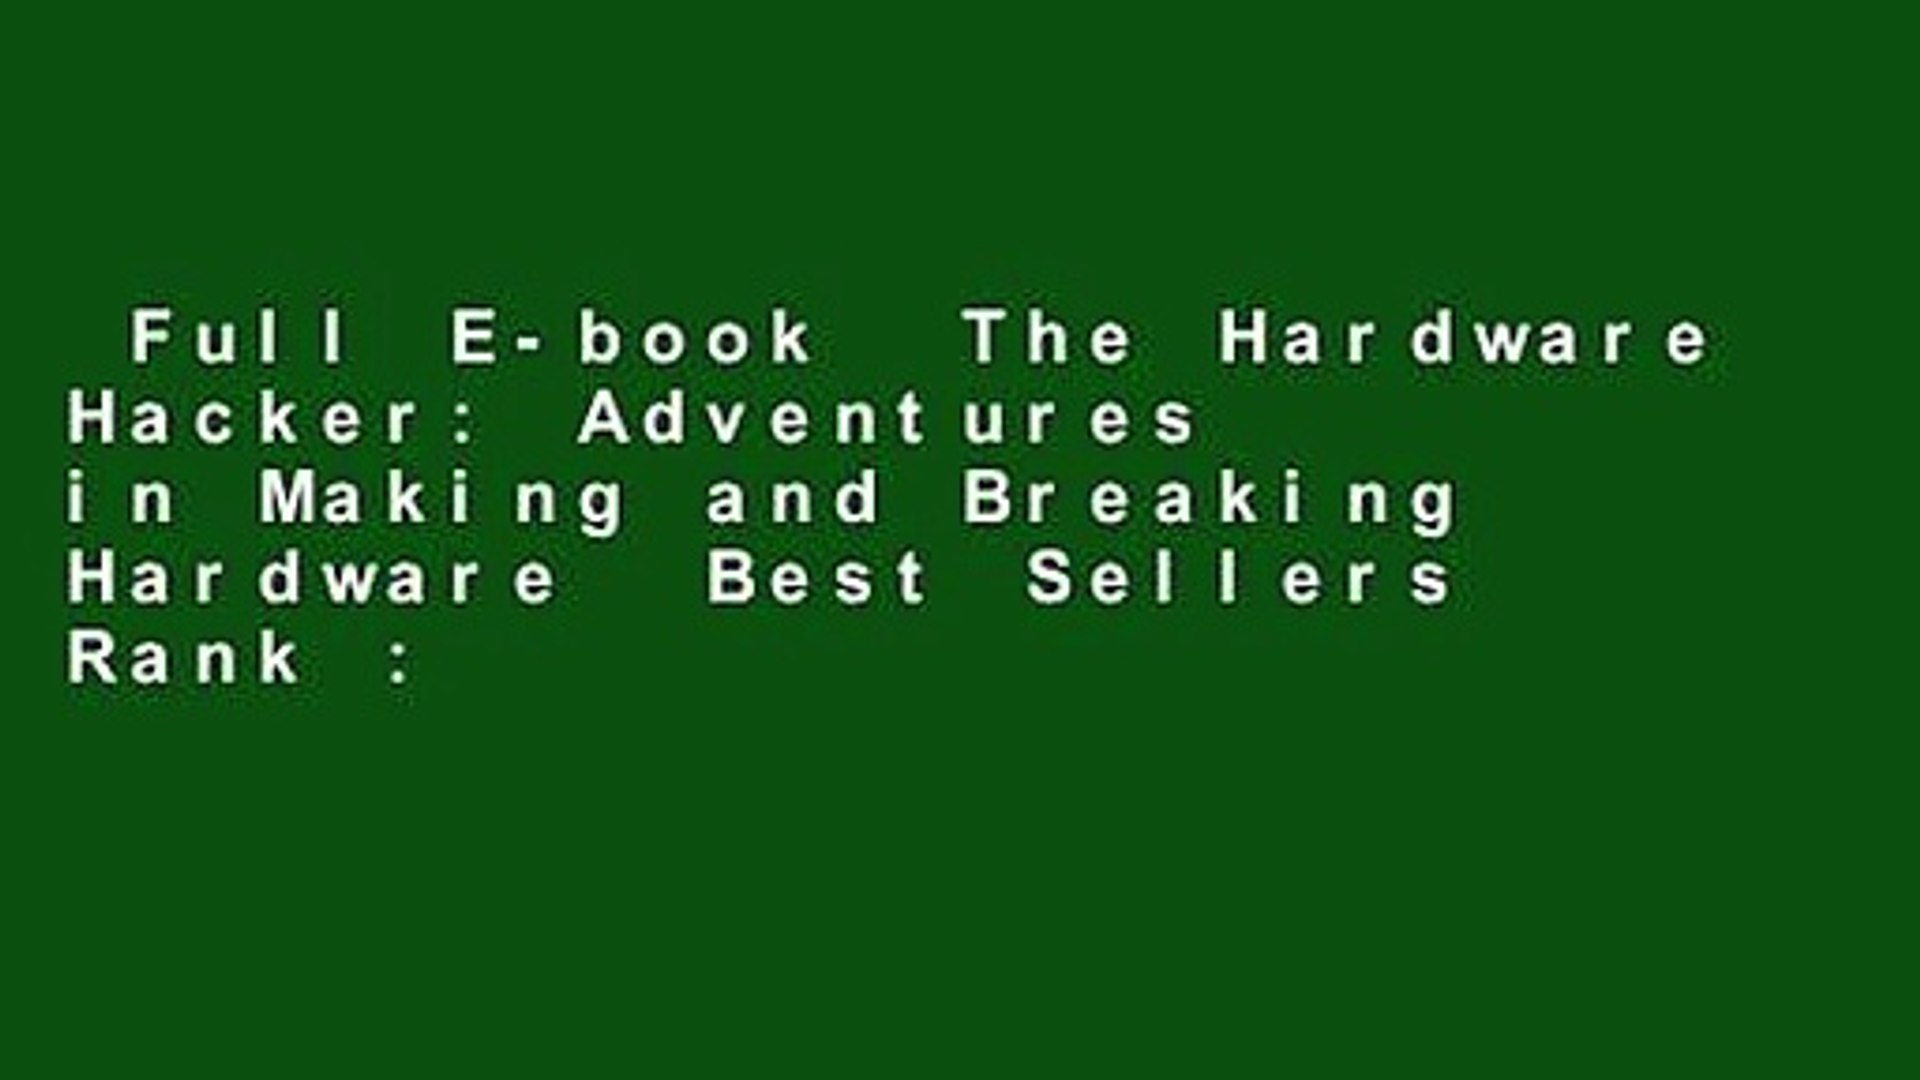 Full E-book  The Hardware Hacker: Adventures in Making and Breaking Hardware  Best Sellers Rank :